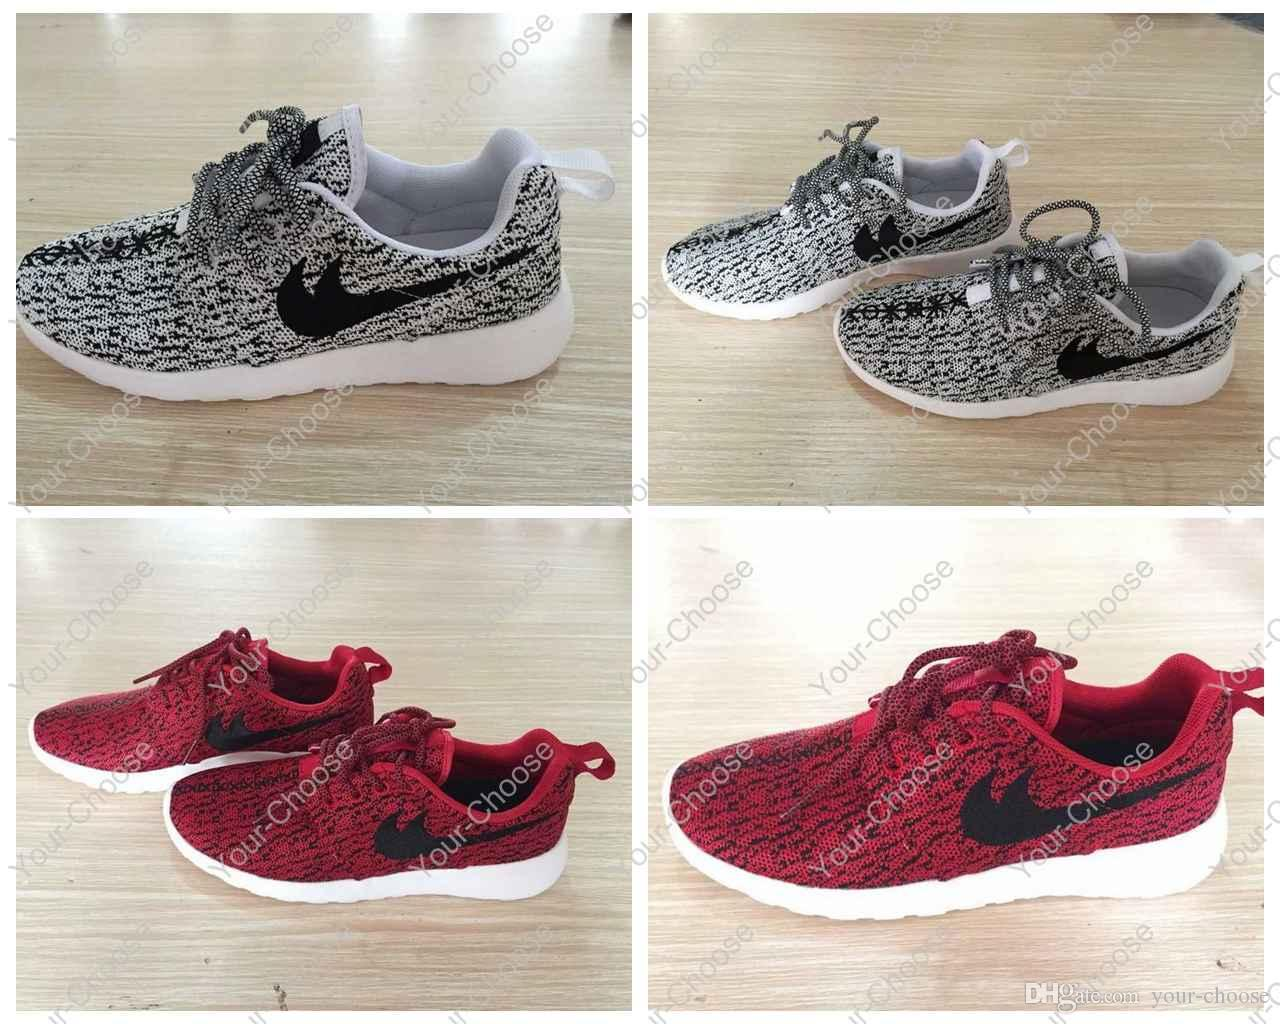 073e95b8b7387 coupon for nike roshe run x yeezy boost flyknit women running shoes gray  black 7mk7pny0 0e0cd 58e89  purchase beaezl nike free run red yeezys price  cheap ...